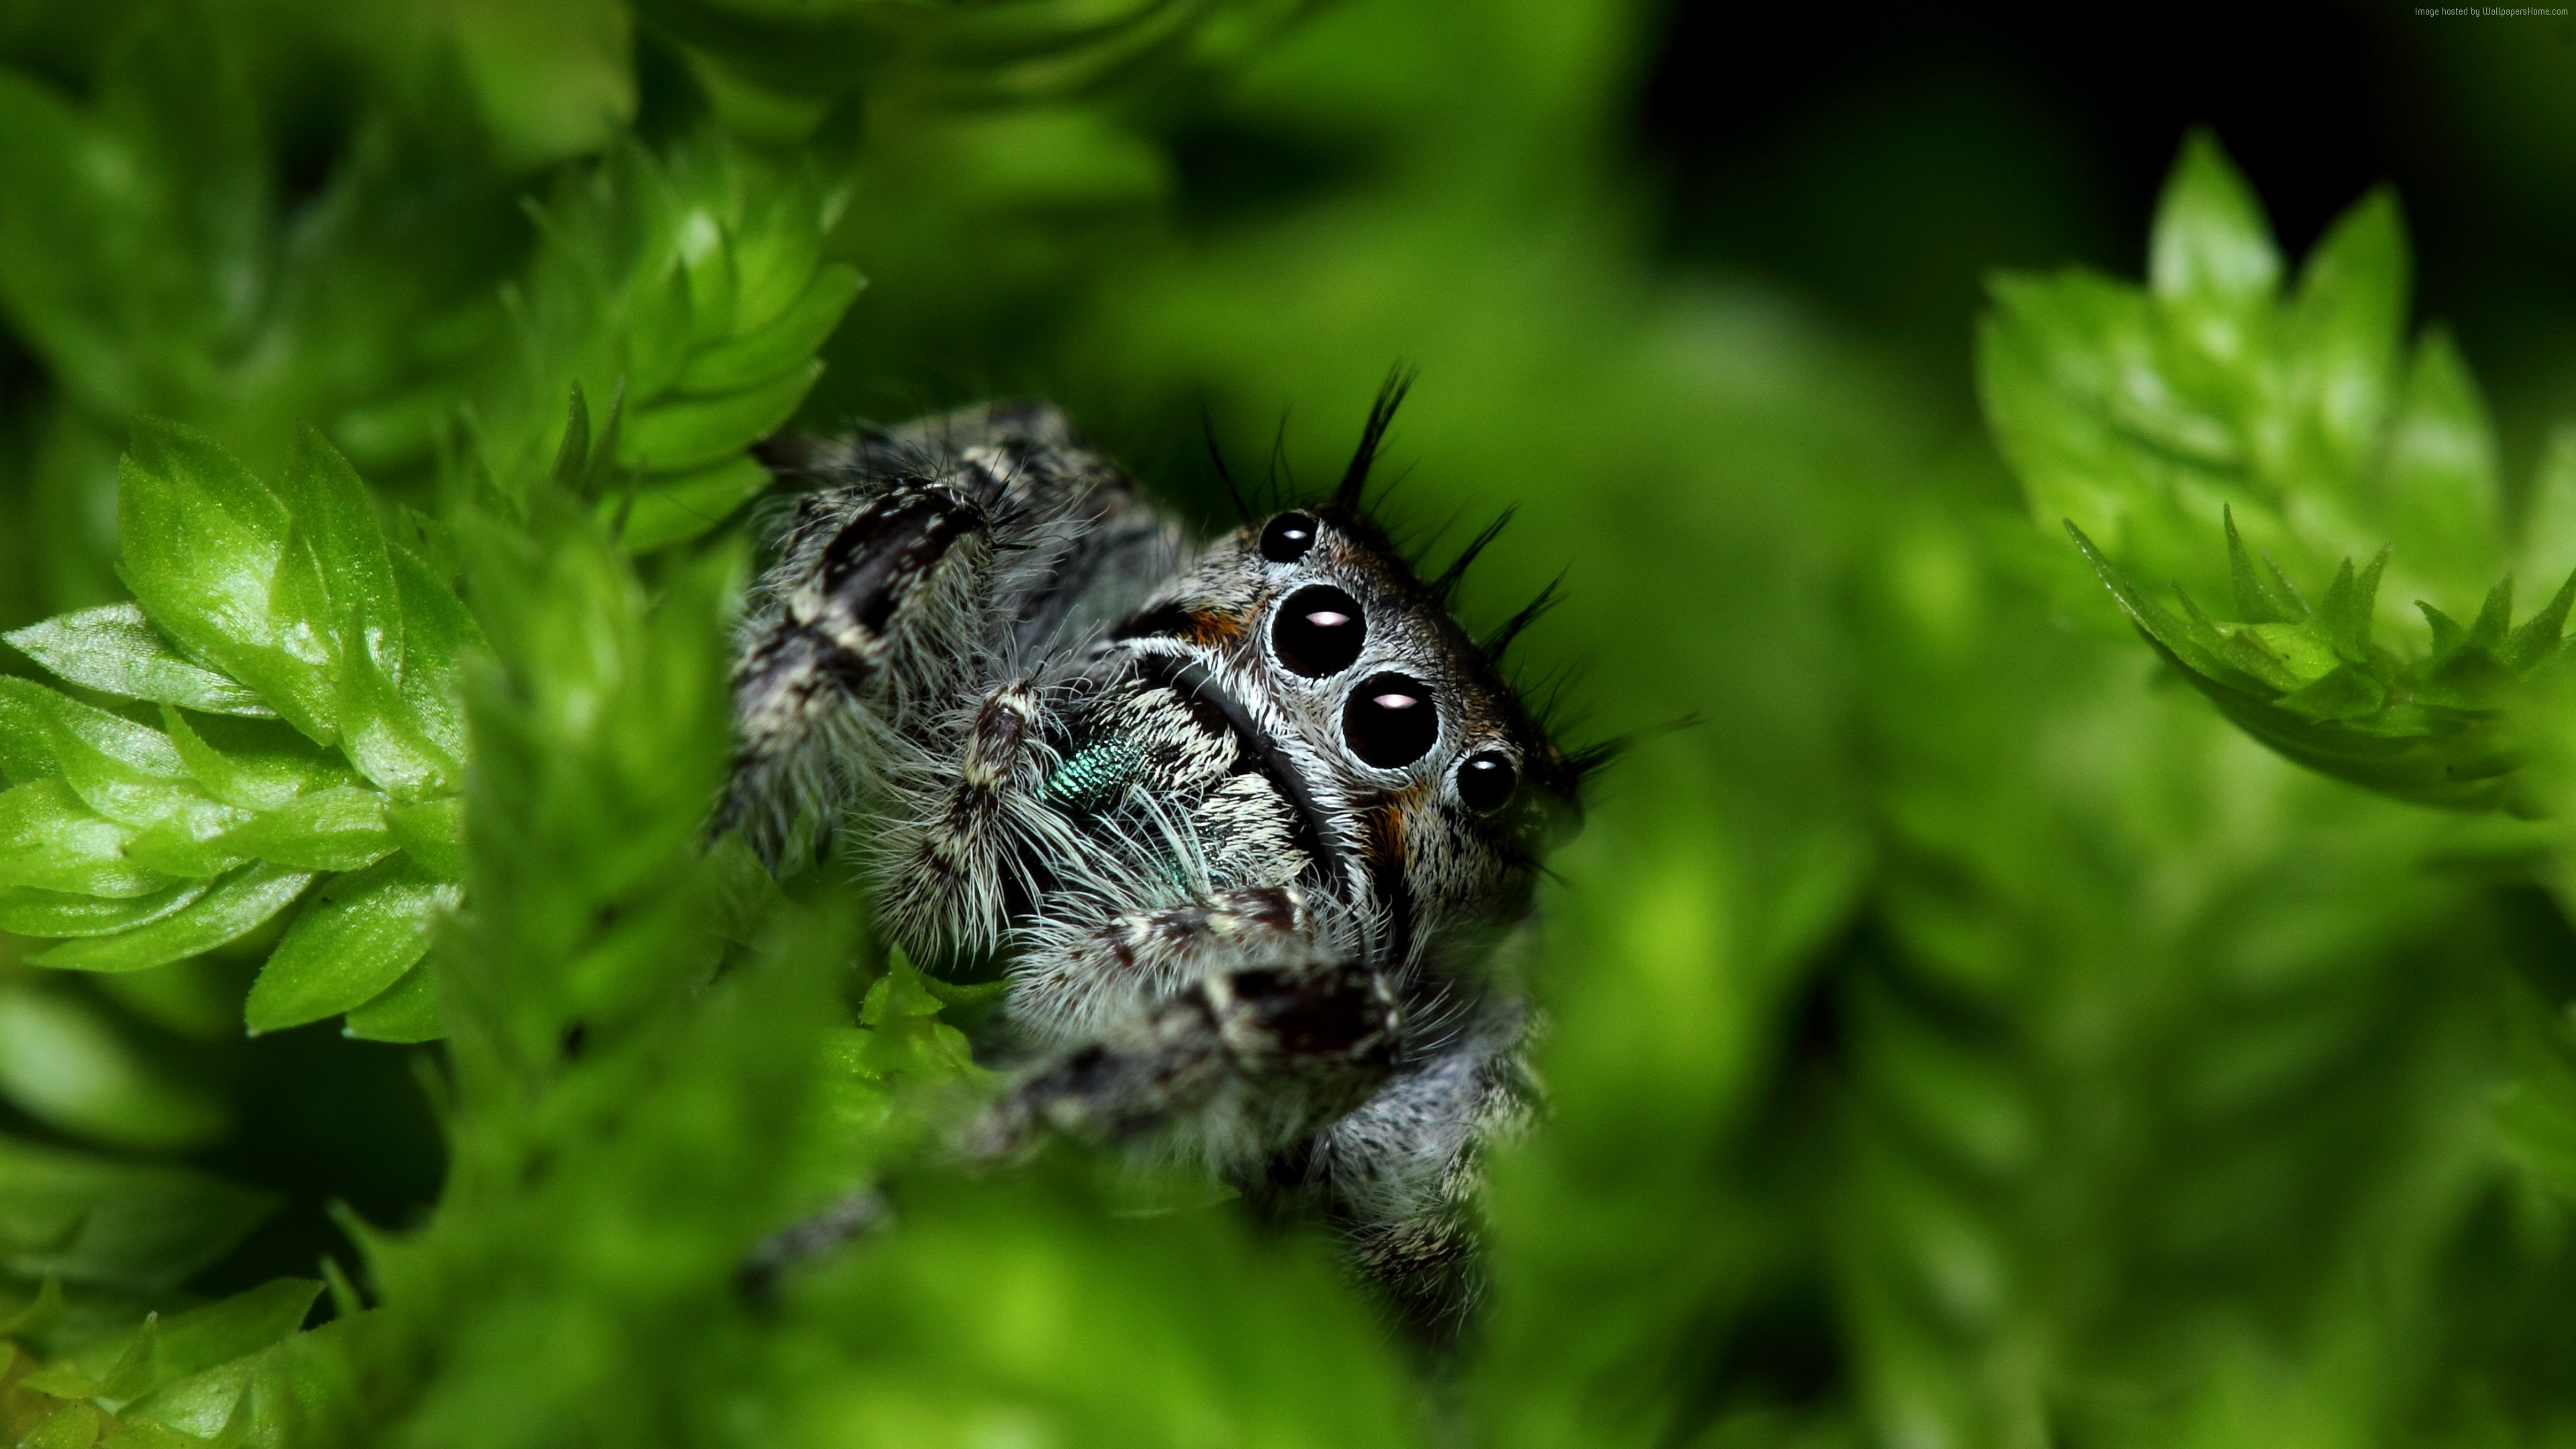 Wallpaper Jumping Spider, eyes, insects, leaves, green, nature, cute, Animals